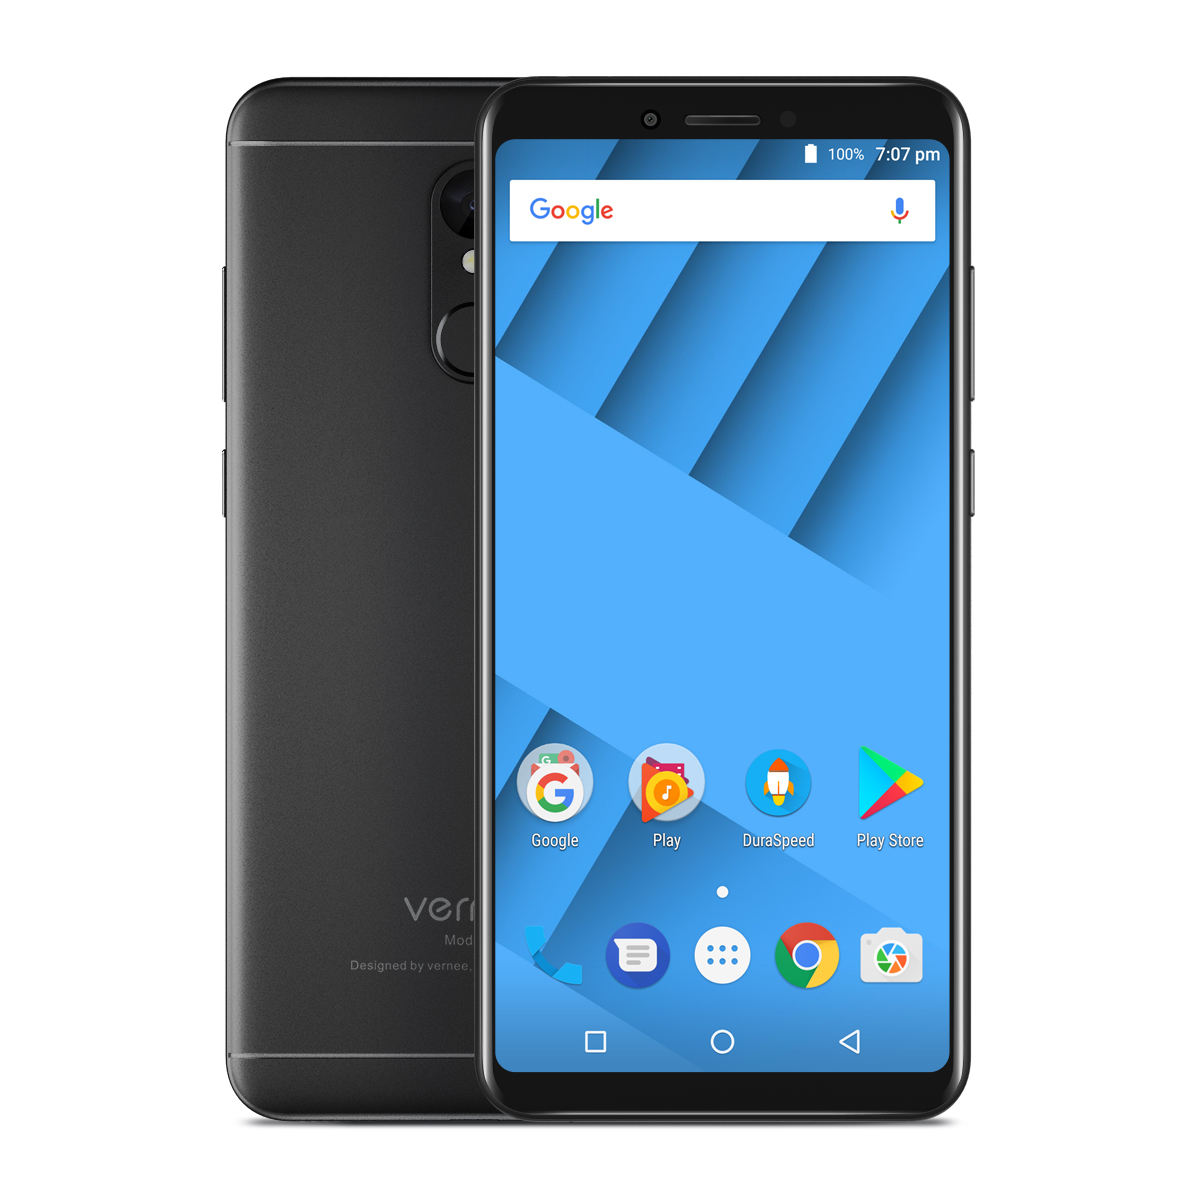 Chất Lượng Tốt Nhất Vernee <span class=keywords><strong>M6</strong></span> 5.7 Inch Android 7.0 Hệ Thống MT6750 4G + 64G <span class=keywords><strong>Điện</strong></span> <span class=keywords><strong>Thoại</strong></span> Thông Minh Mặt Recognitio <span class=keywords><strong>Điện</strong></span> <span class=keywords><strong>Thoại</strong></span>